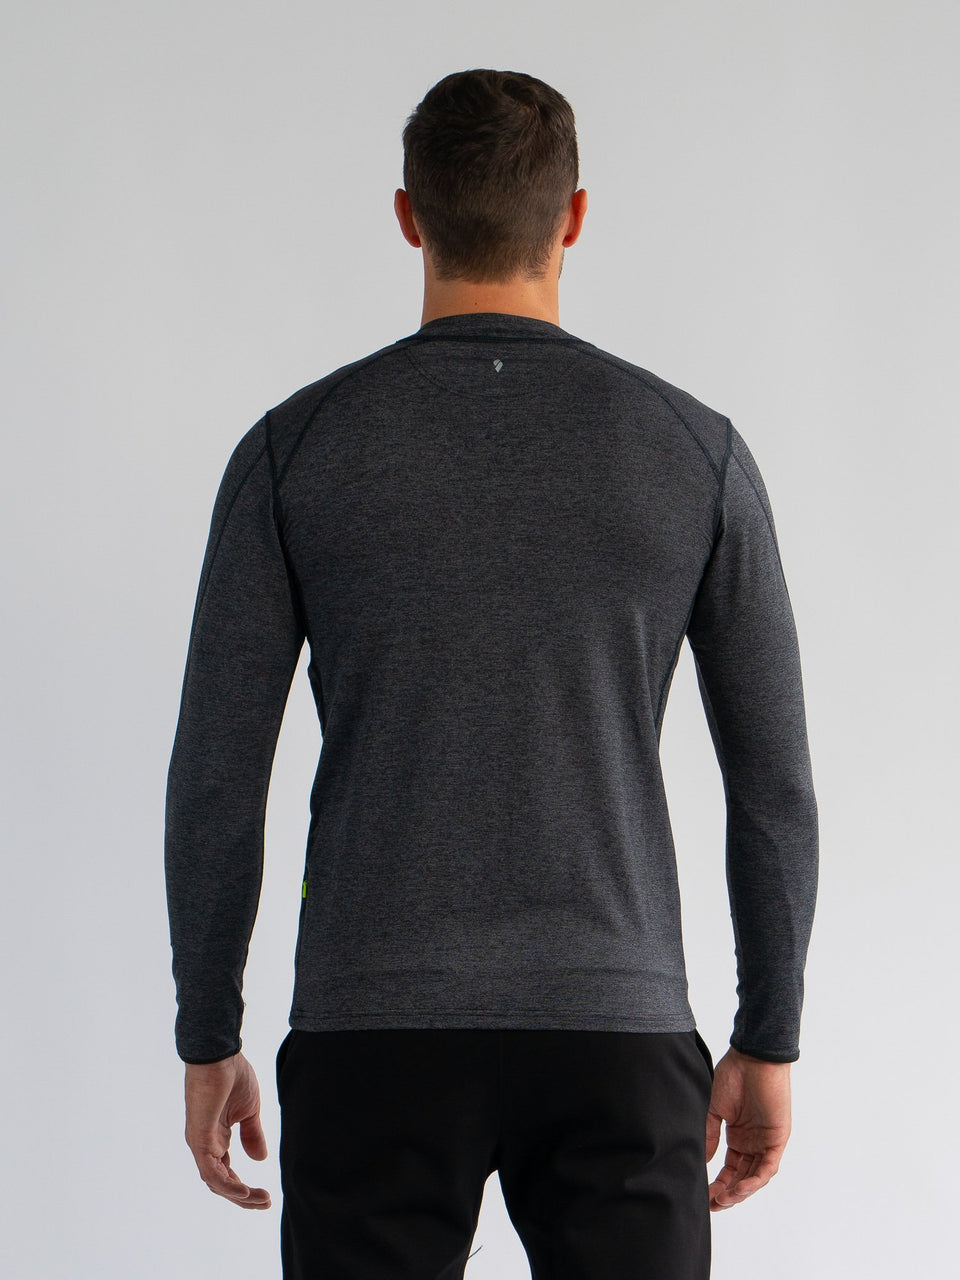 Elevate 1/4 Zip - SODO Apparel - SHIRTS